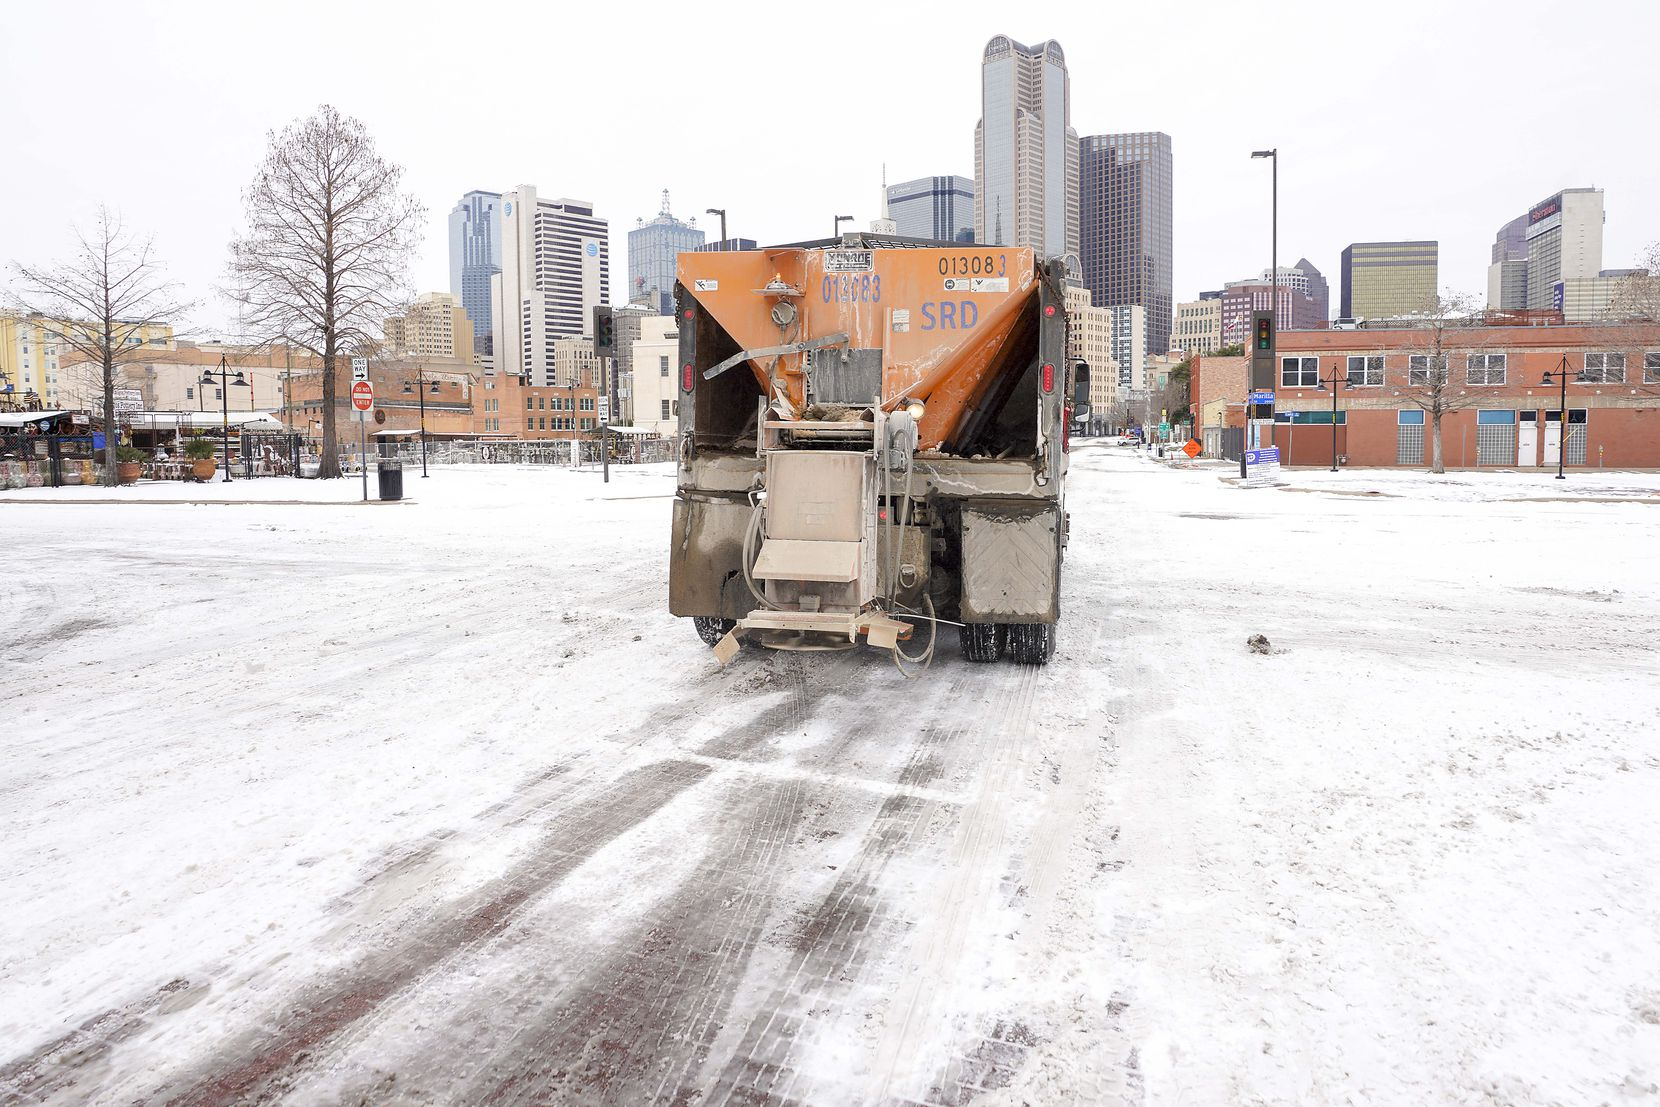 A City of Dallas Mobility and Street Services truck spreads de-icing materials downtown a winter storm brought snow and freezing temperatures to North Texas on Tuesday, Feb. 16, 2021, in Dallas. Another winter storm could dump 5 more inches of snow on Dallas-Fort Worth. (Smiley N. Pool/The Dallas Morning News)